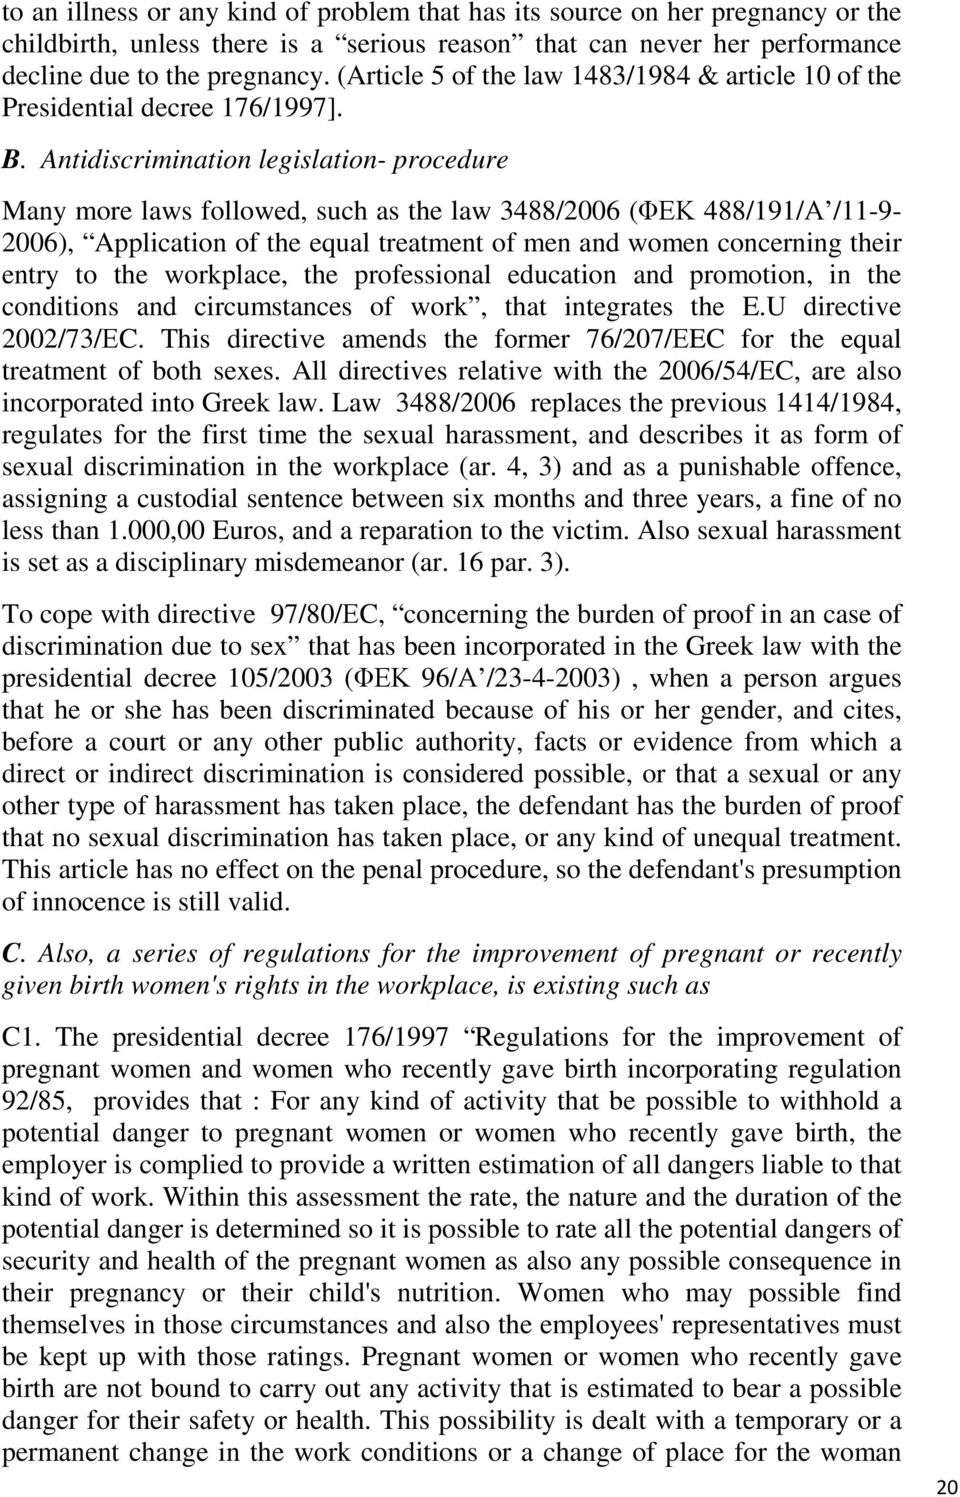 Antidiscrimination legislation- procedure Many more laws followed, such as the law 3488/2006 (ΦΕΚ 488/191/Α /11-9- 2006), Application of the equal treatment of men and women concerning their entry to